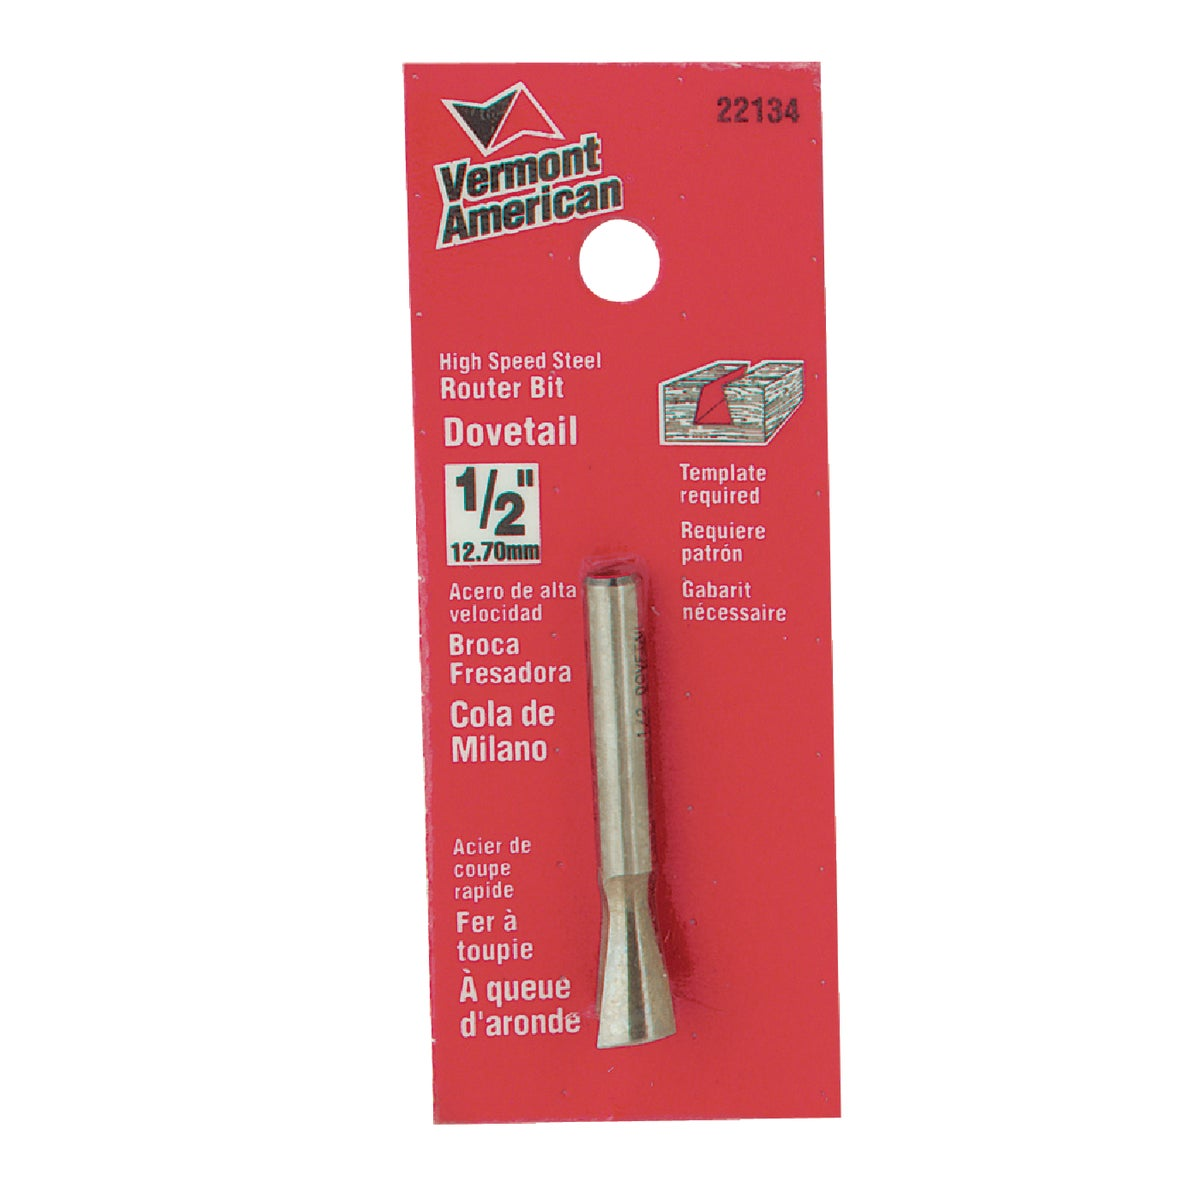 "1/2"" DOVETAIL ROUTER BIT - 23114 by Vermont American"